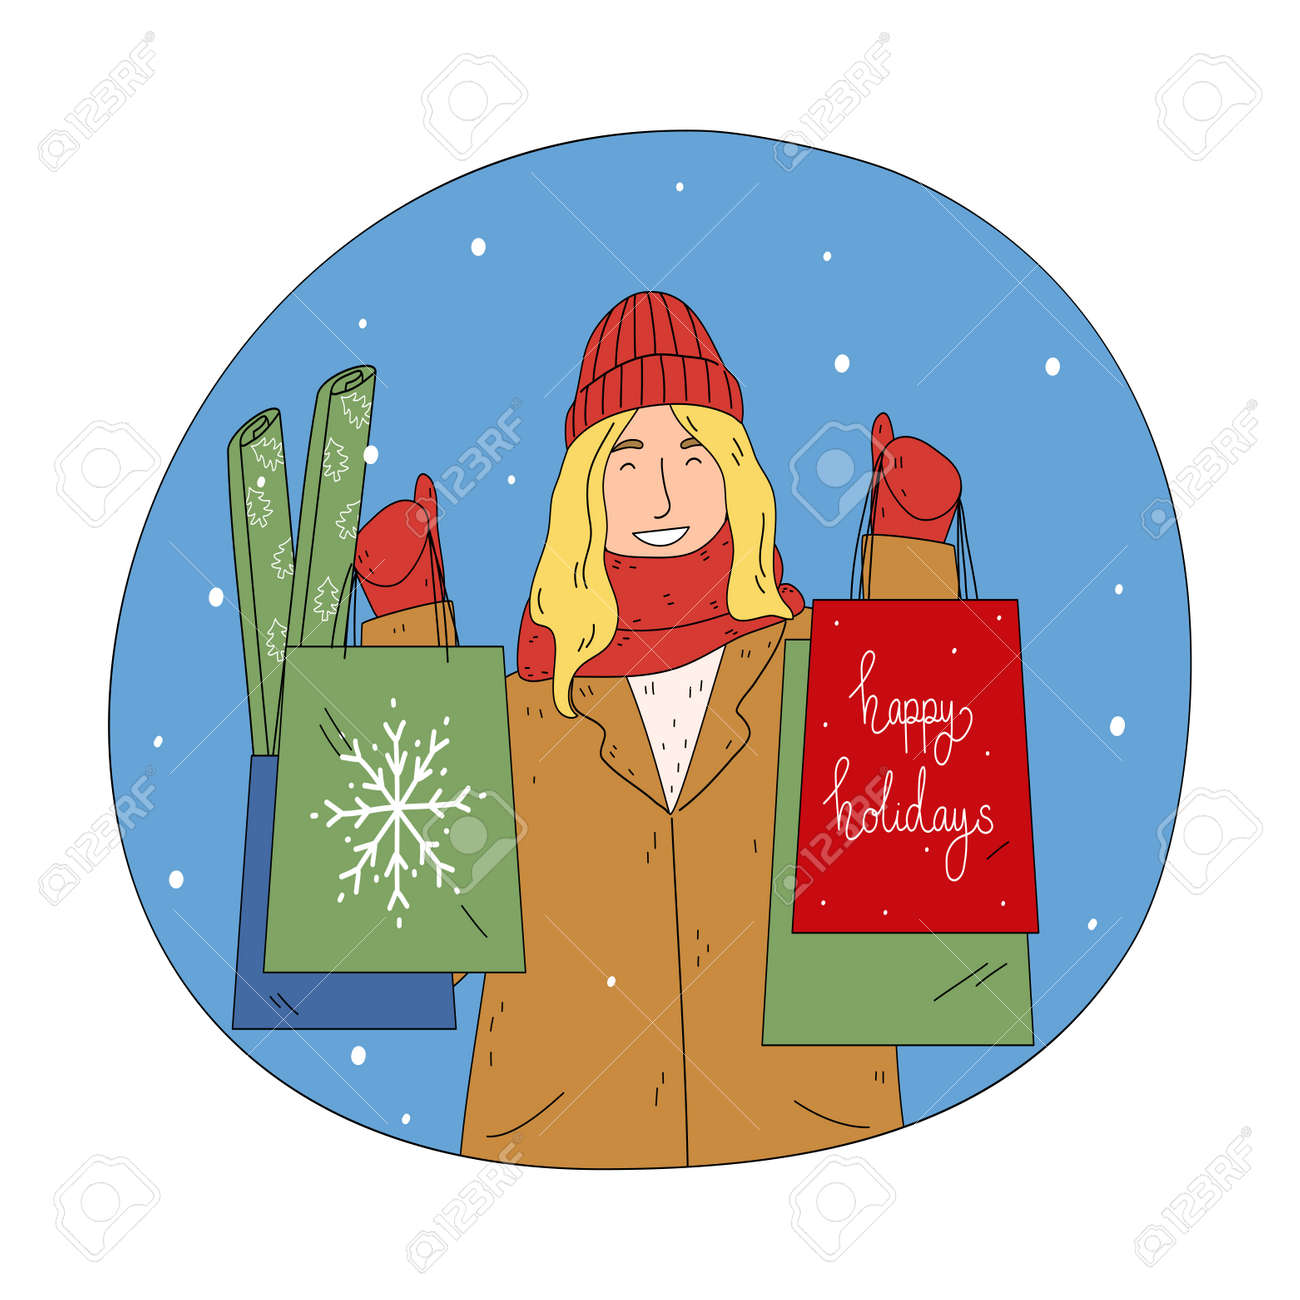 Young happy woman holding shopping bags with food and presents - 162069957